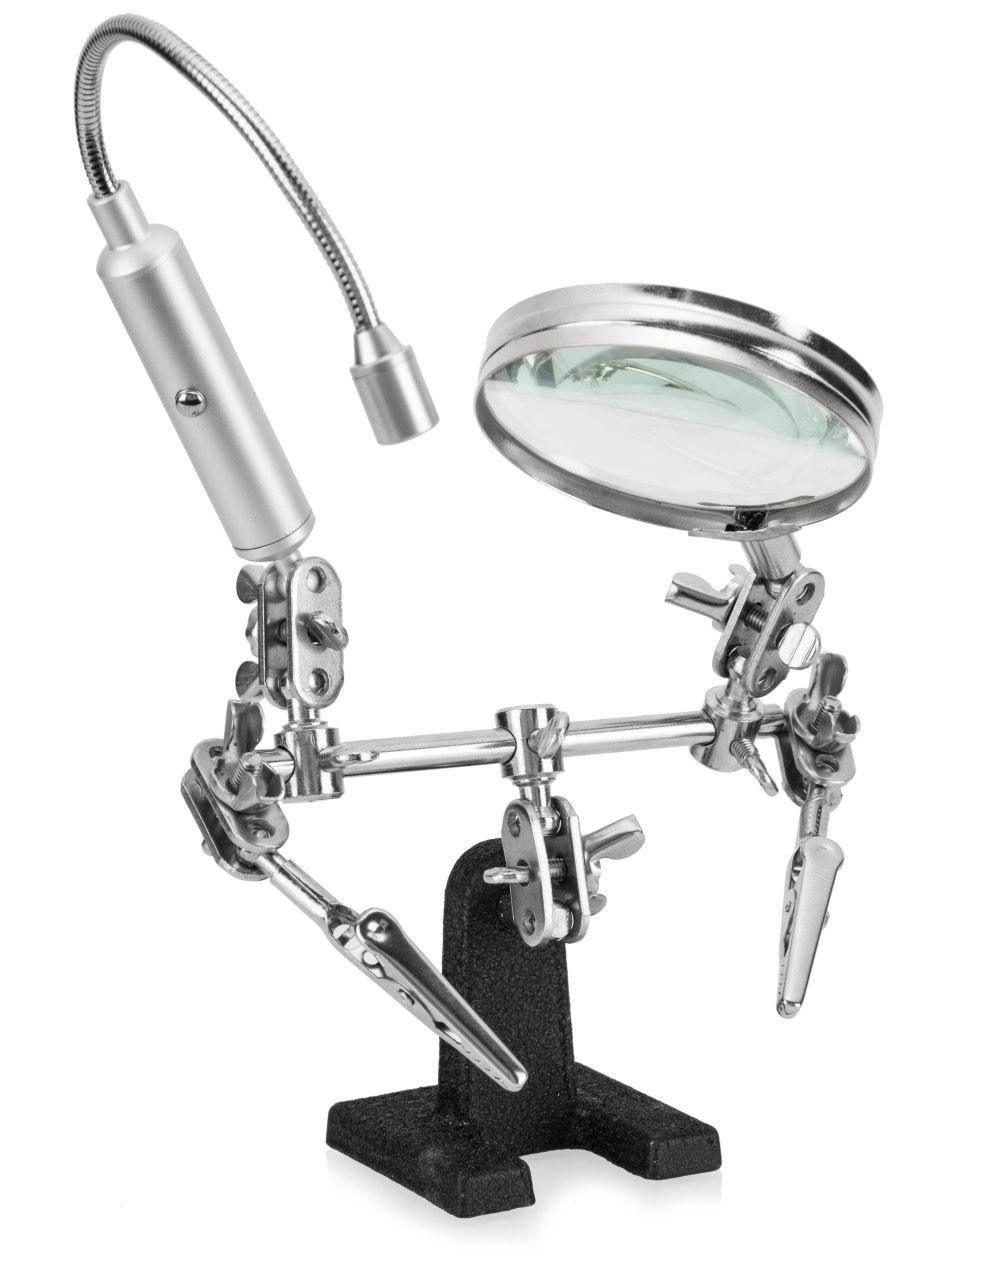 RamPro Helping Hand Magnifier Glass Stand with Flexible Neck LED Flashlight & Alligator Clips – 3x Magnifying Lens, Perfect for Soldering, Crafting & Inspecting Micro Objects (Batteries Included)